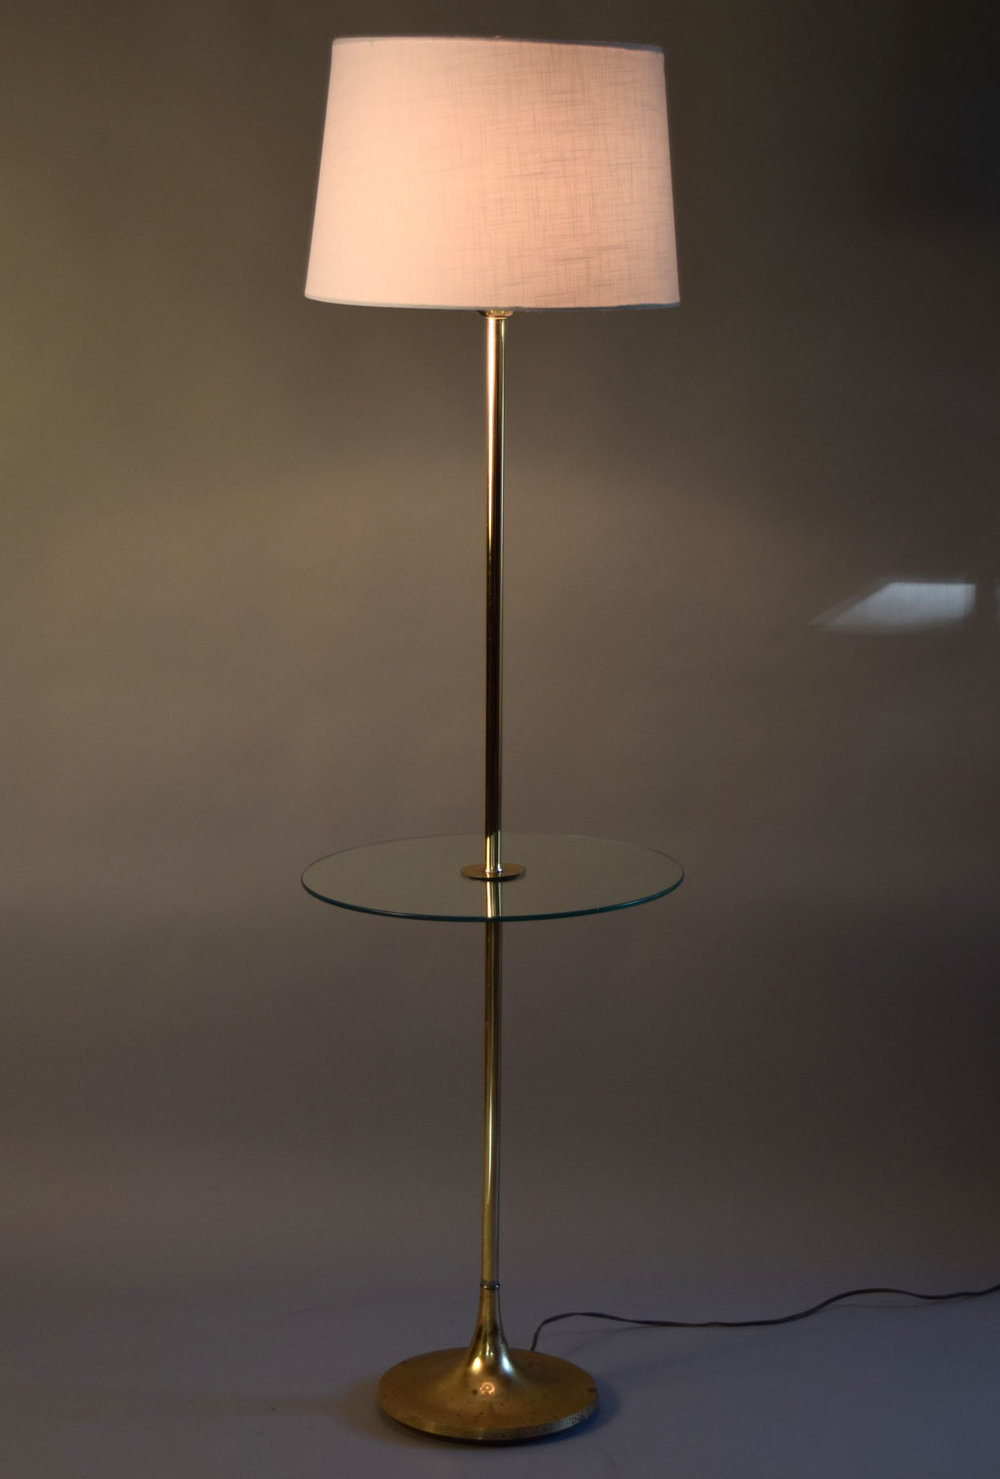 Laurel Lamp Company Brass Tulip Floor Lamp With Glass Table   SOLD